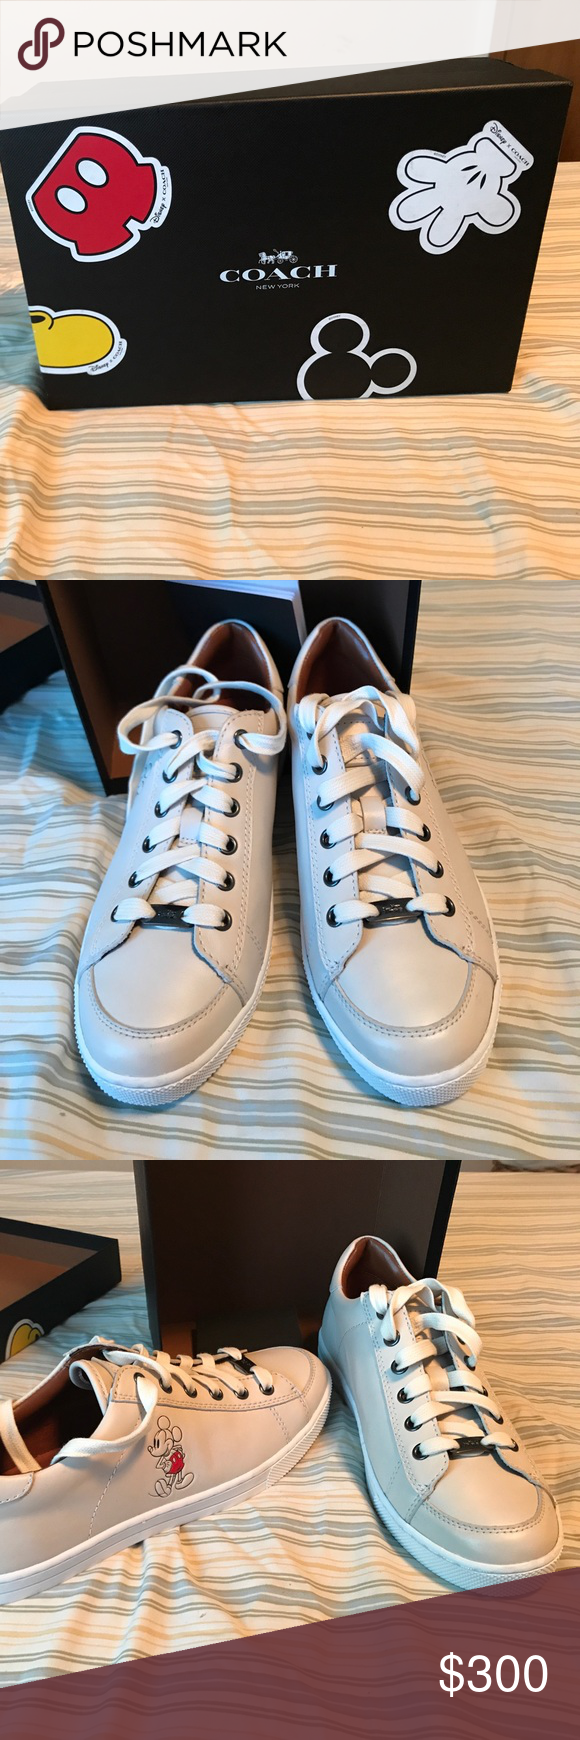 cce55d6a9534 Coach Mickey Mouse limited edition sneaker New with box once limited  edition Mickey Mouse coach sneaker